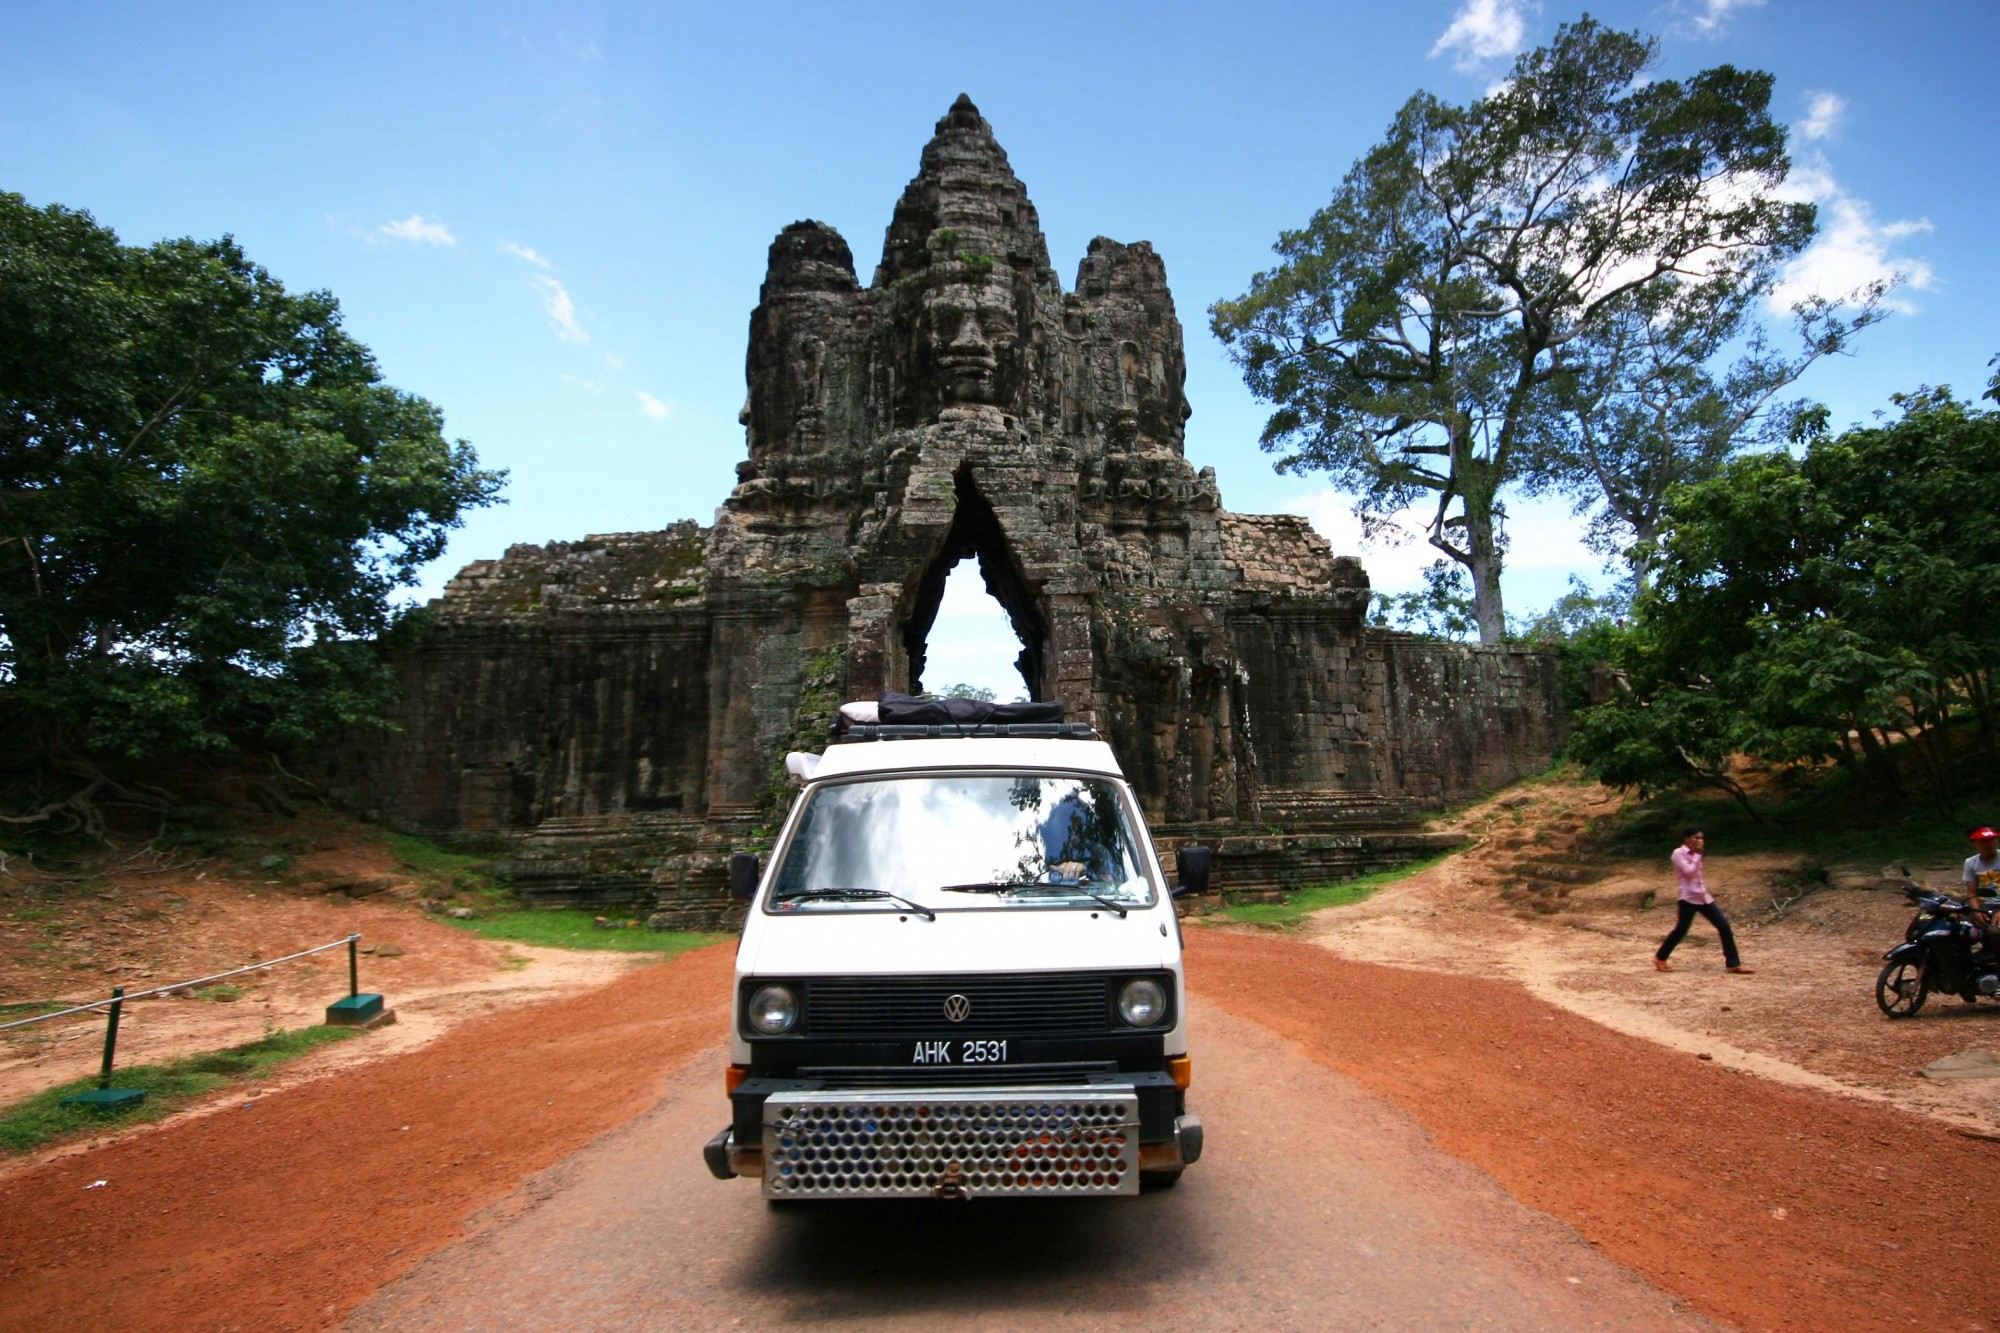 Arriving at Angkor Wat in Cambodia